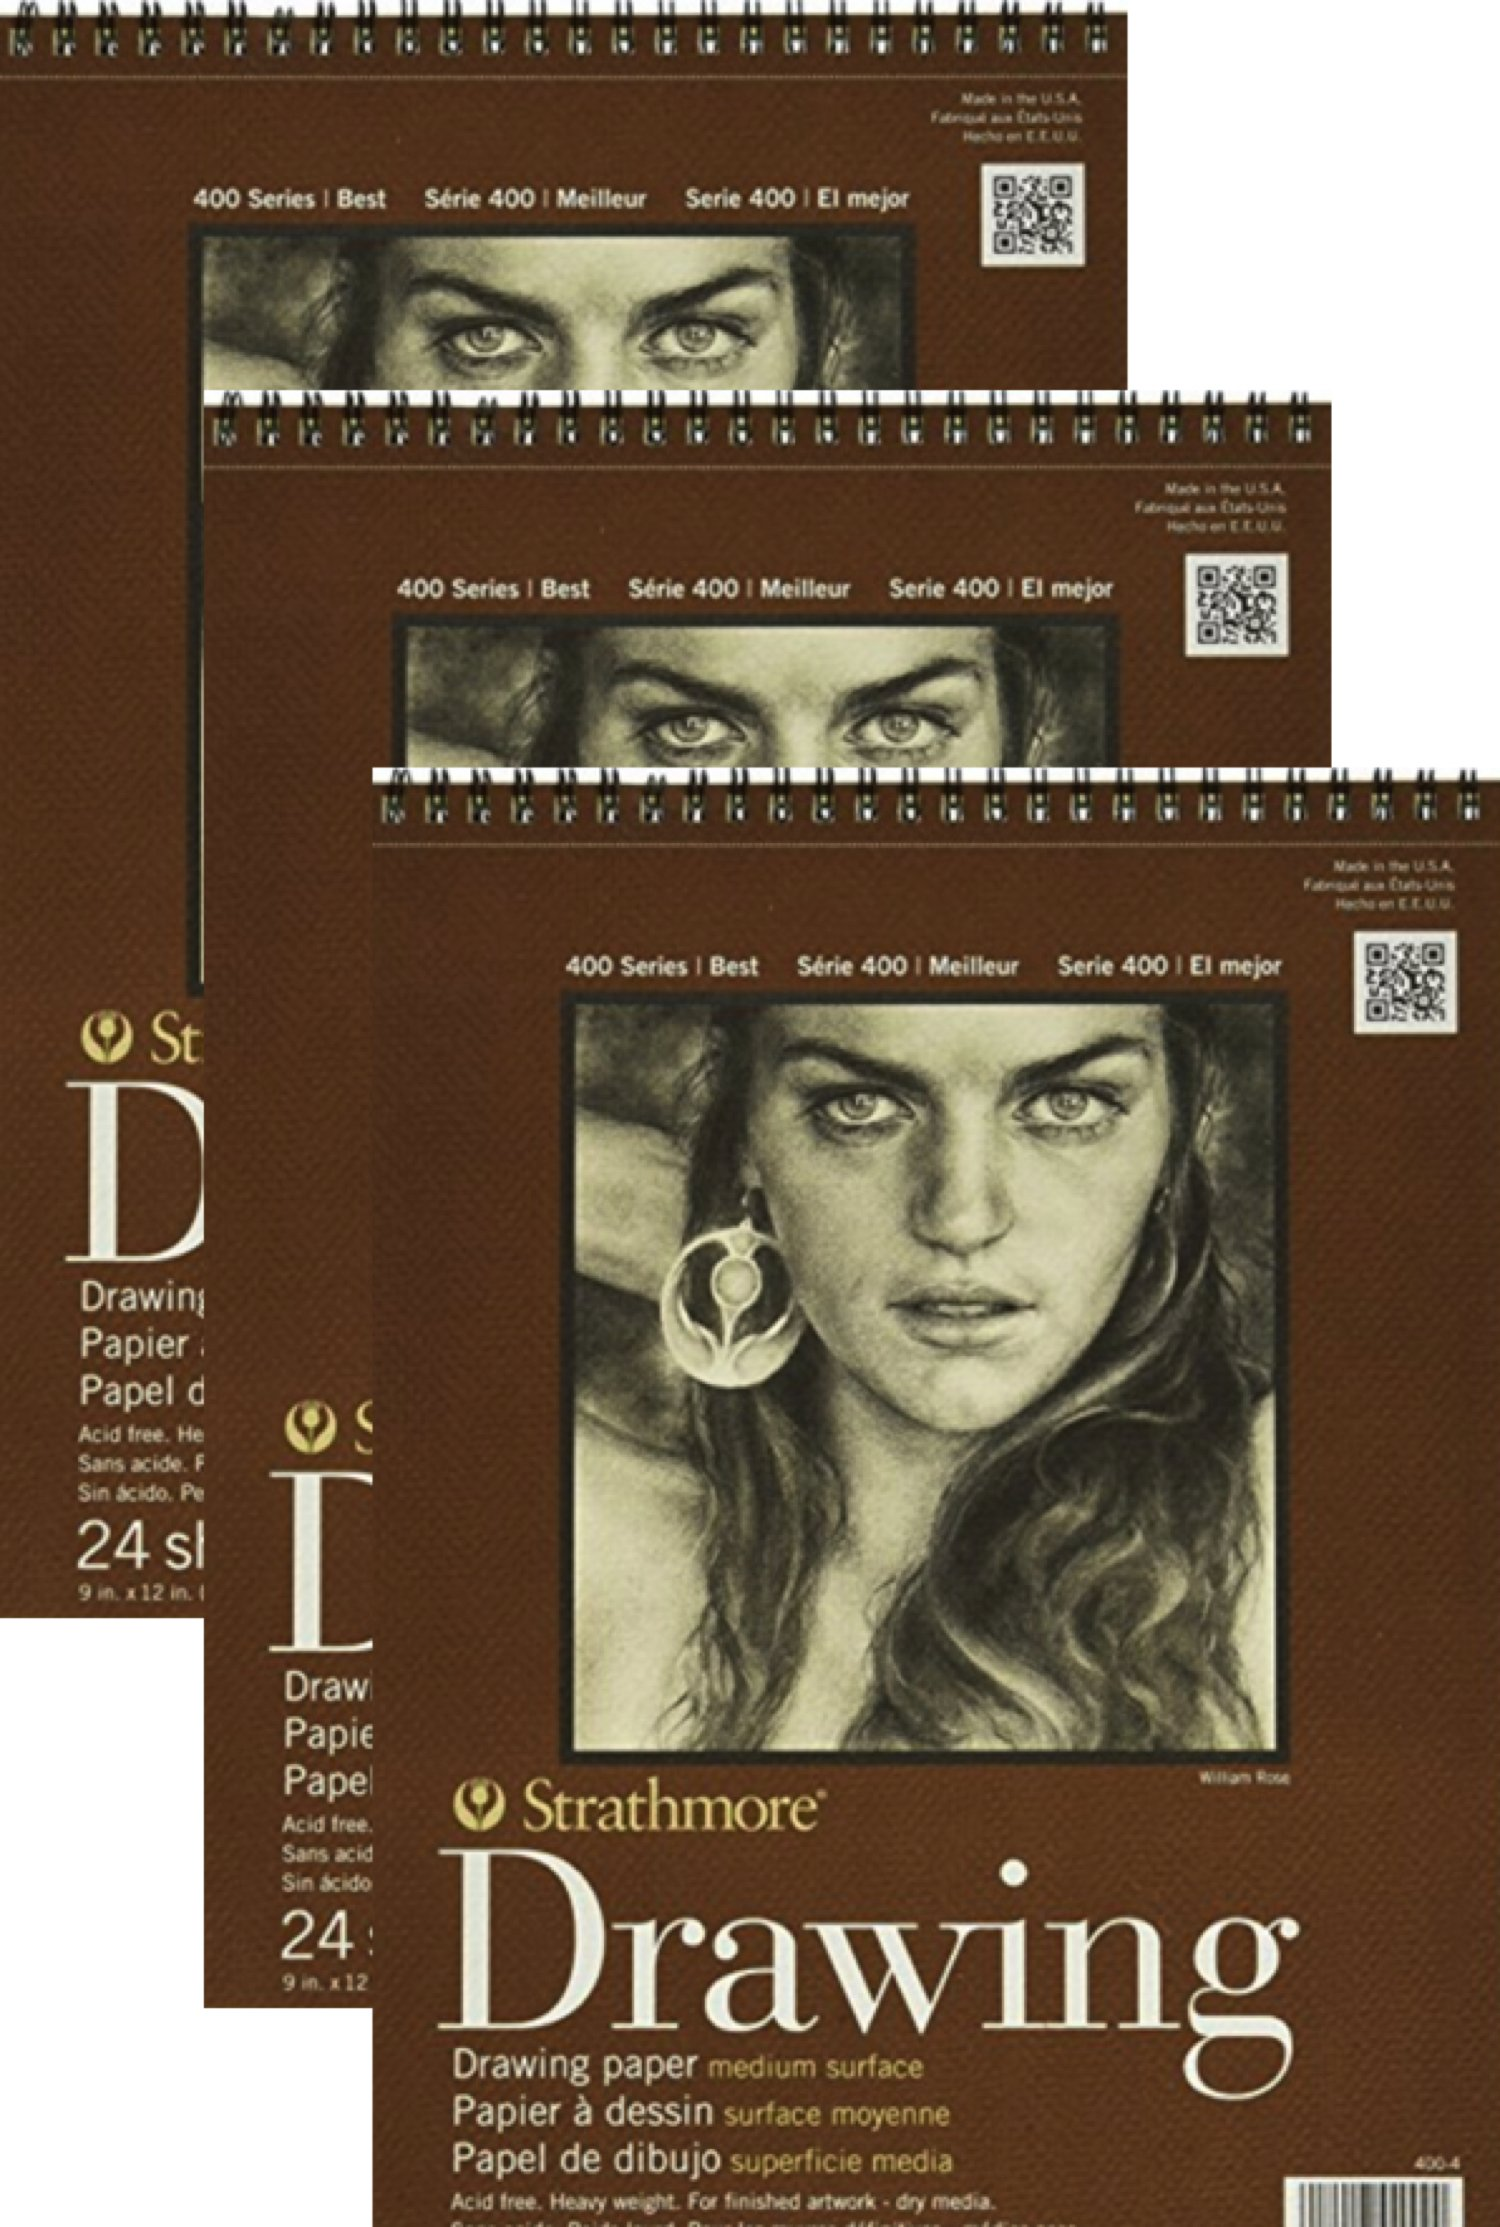 Anahs Market Strathmore - 9 x 12 Drawing Pads - Bundle of 3 - 24 Sheets Each by Anahs Market